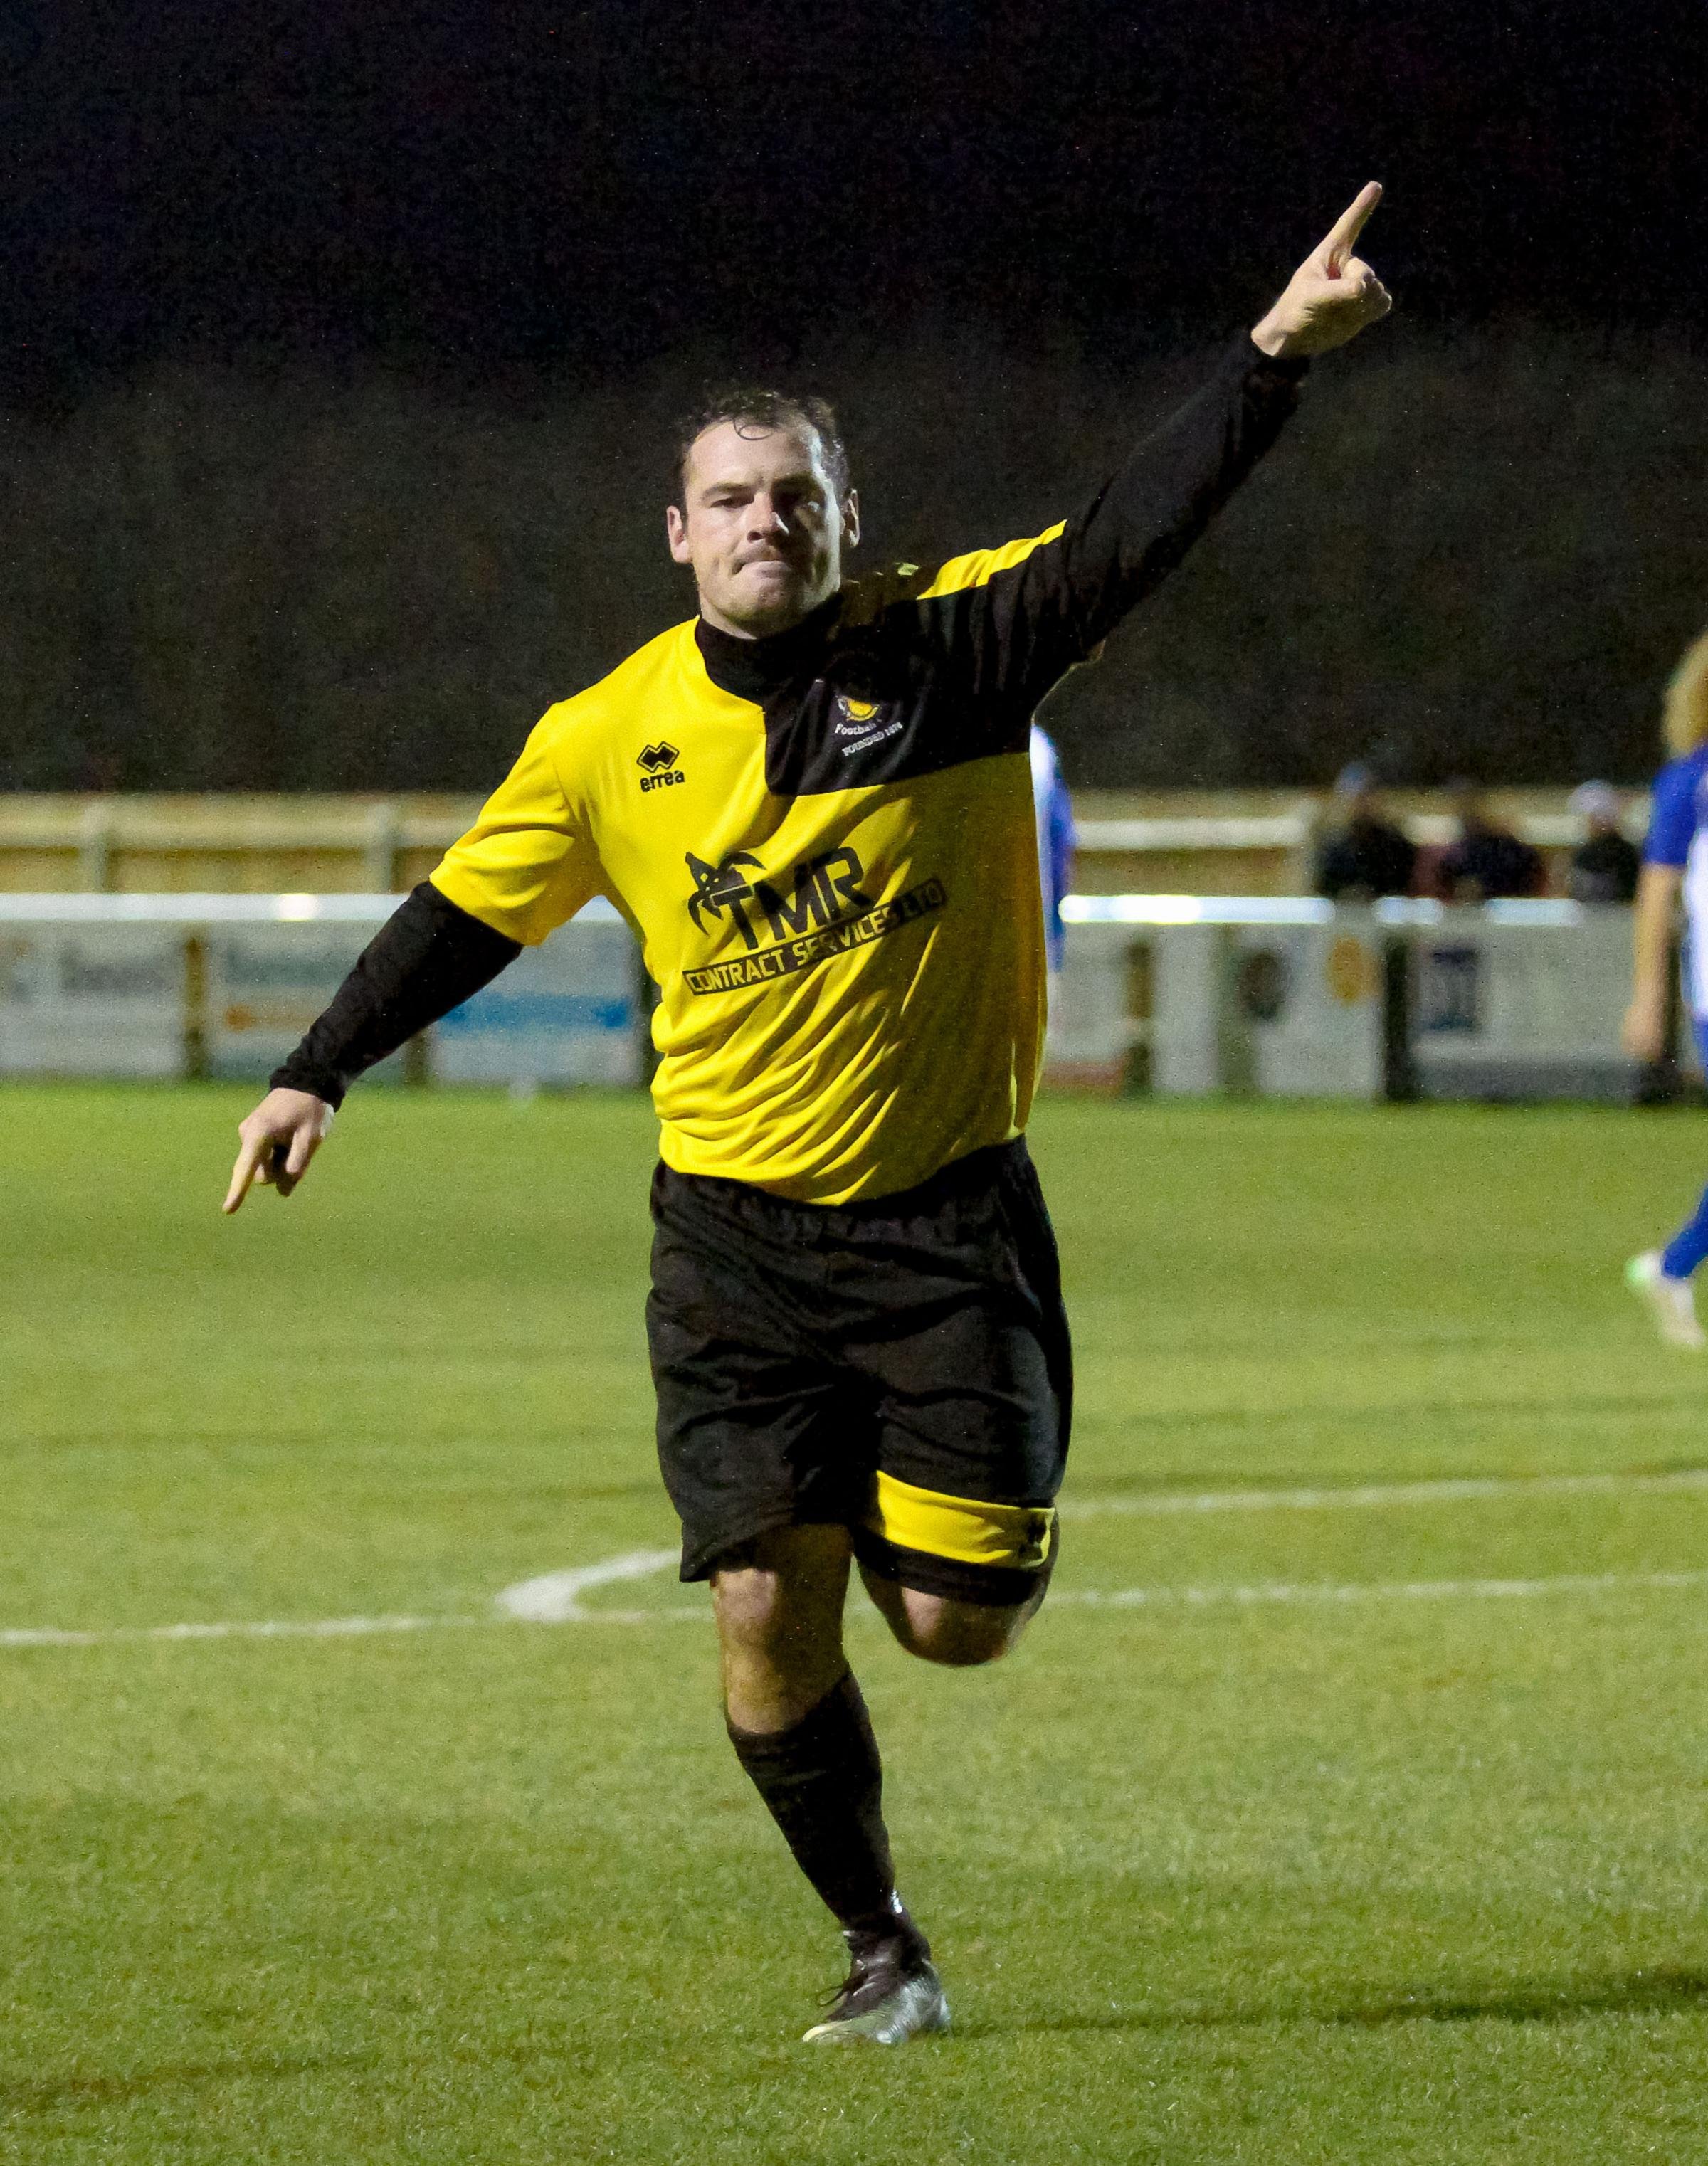 Luke Ballinger celebrates his second goal for Melksham Town against Bridgwater Town. PICTURE: JOHN CUTHBERTSON